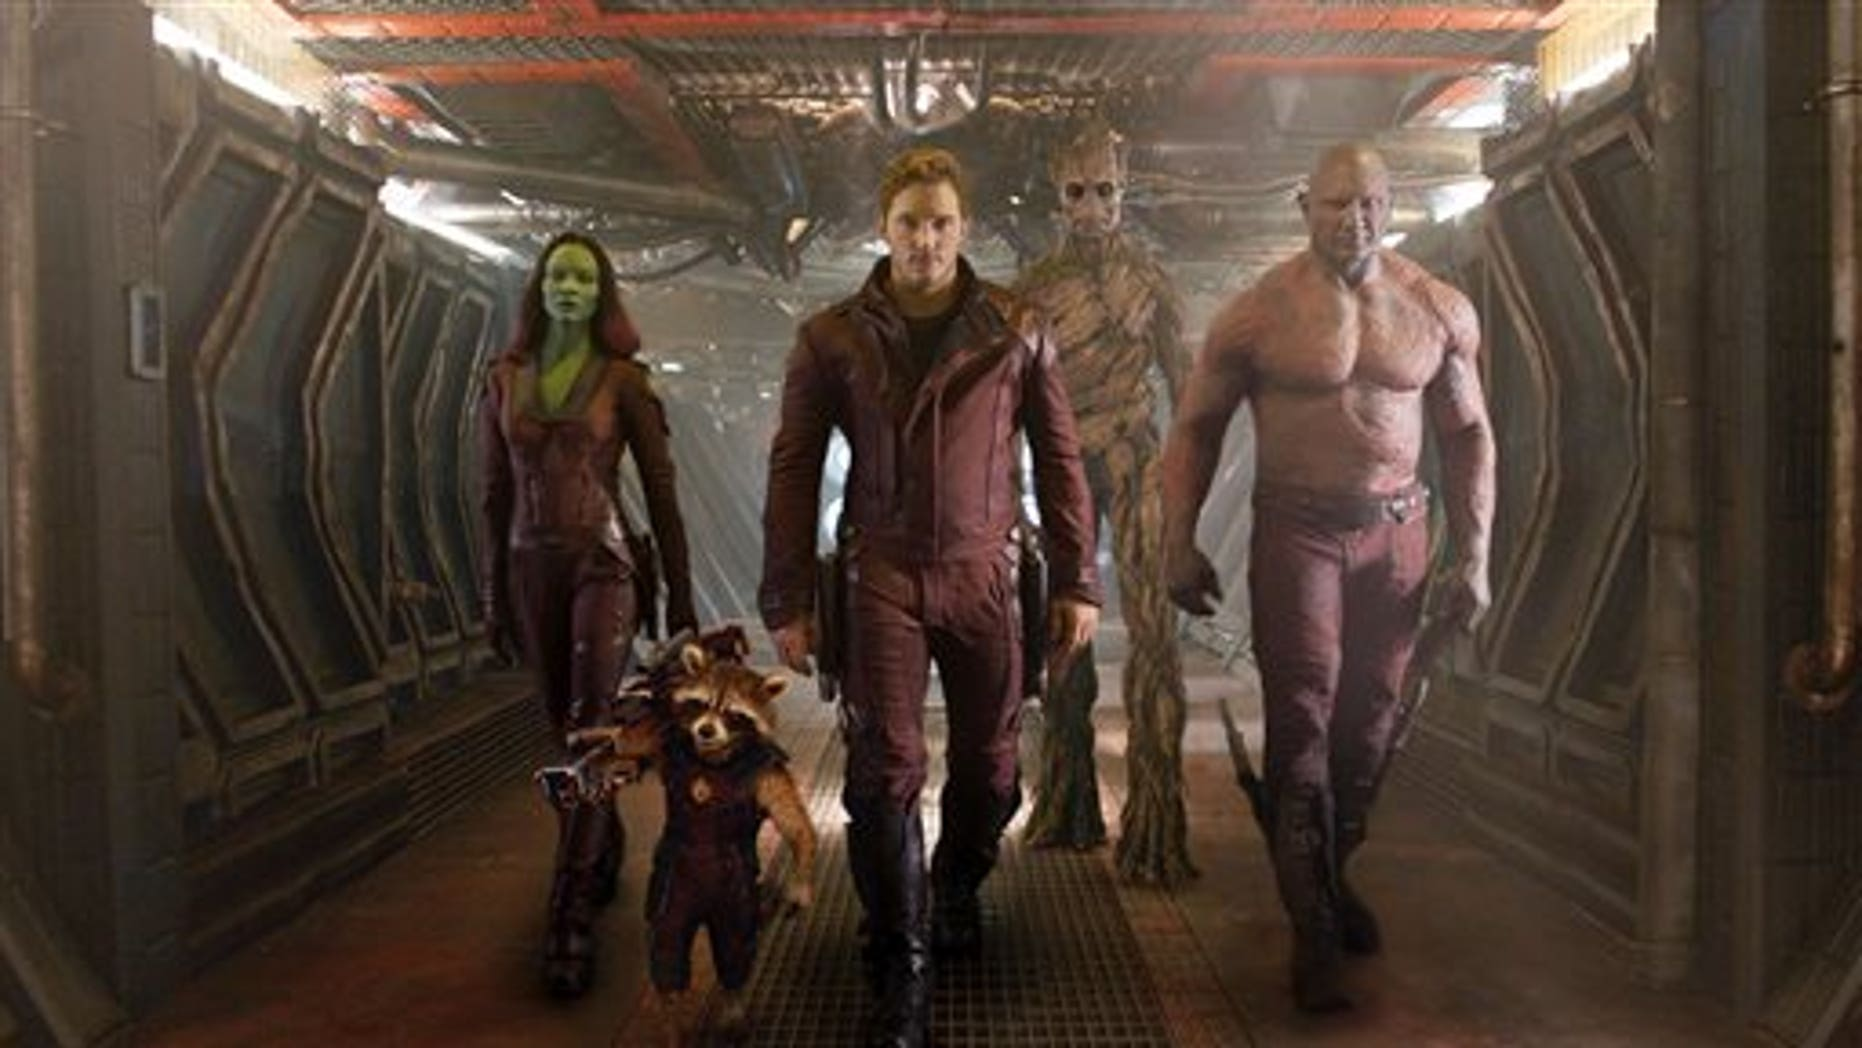 """This image released by Disney - Marvel shows, from left, Zoe Saldana, the character Rocket Racoon, voiced by Bradley Cooper, Chris Pratt, the character Groot, voiced by Vin Diesel, and Dave Bautista in a scene from """"Guardians of the Galaxy."""" The movie releases on Friday, Aug. 1, 2014. (AP Photo/Disney - Marvel)"""